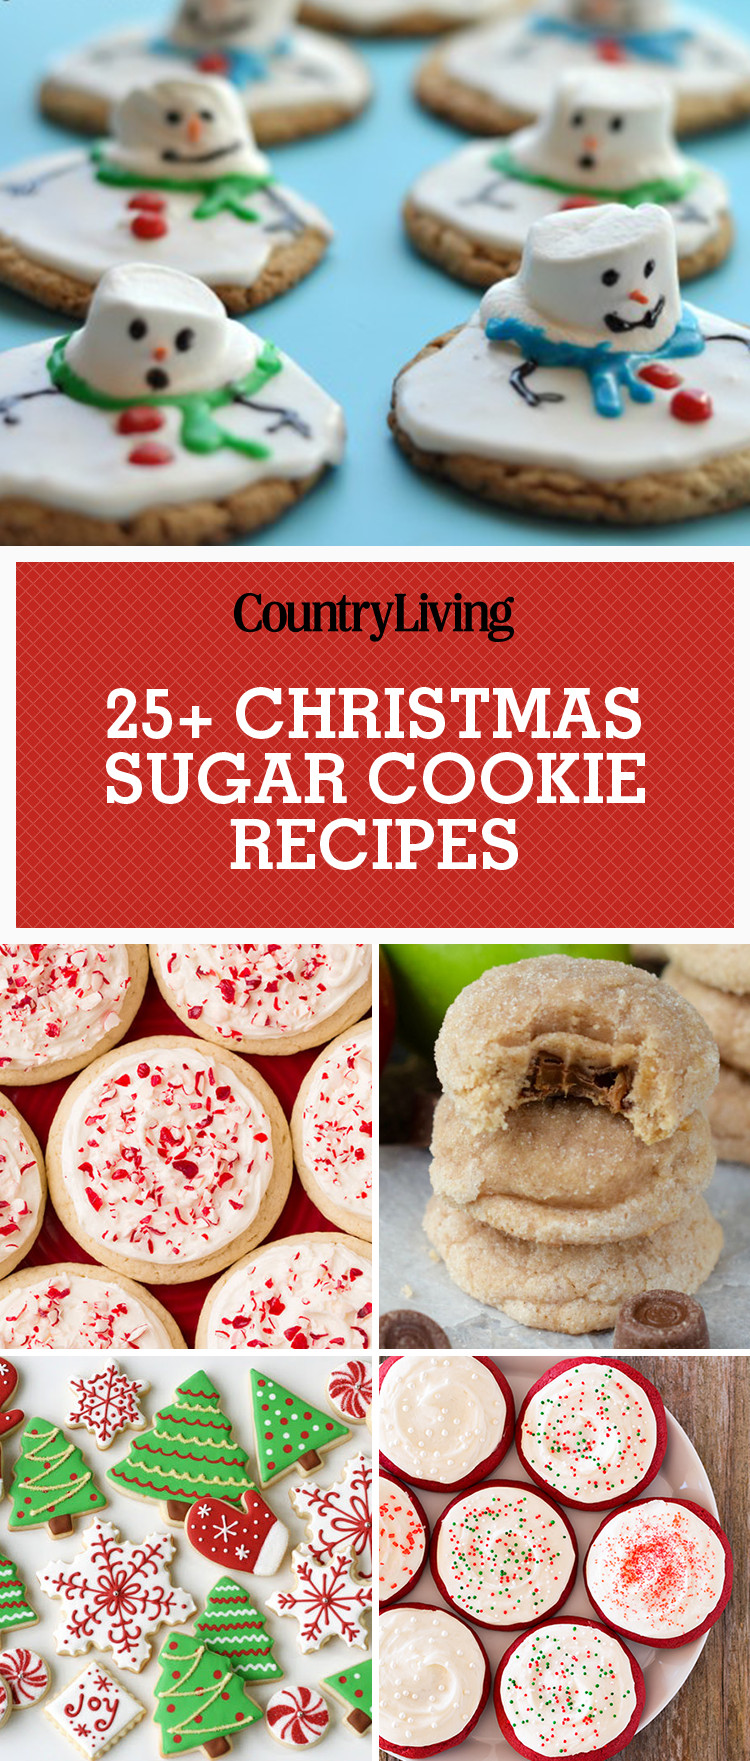 Christmas Sugar Cookies Recipes  25 Easy Christmas Sugar Cookies Recipes & Decorating